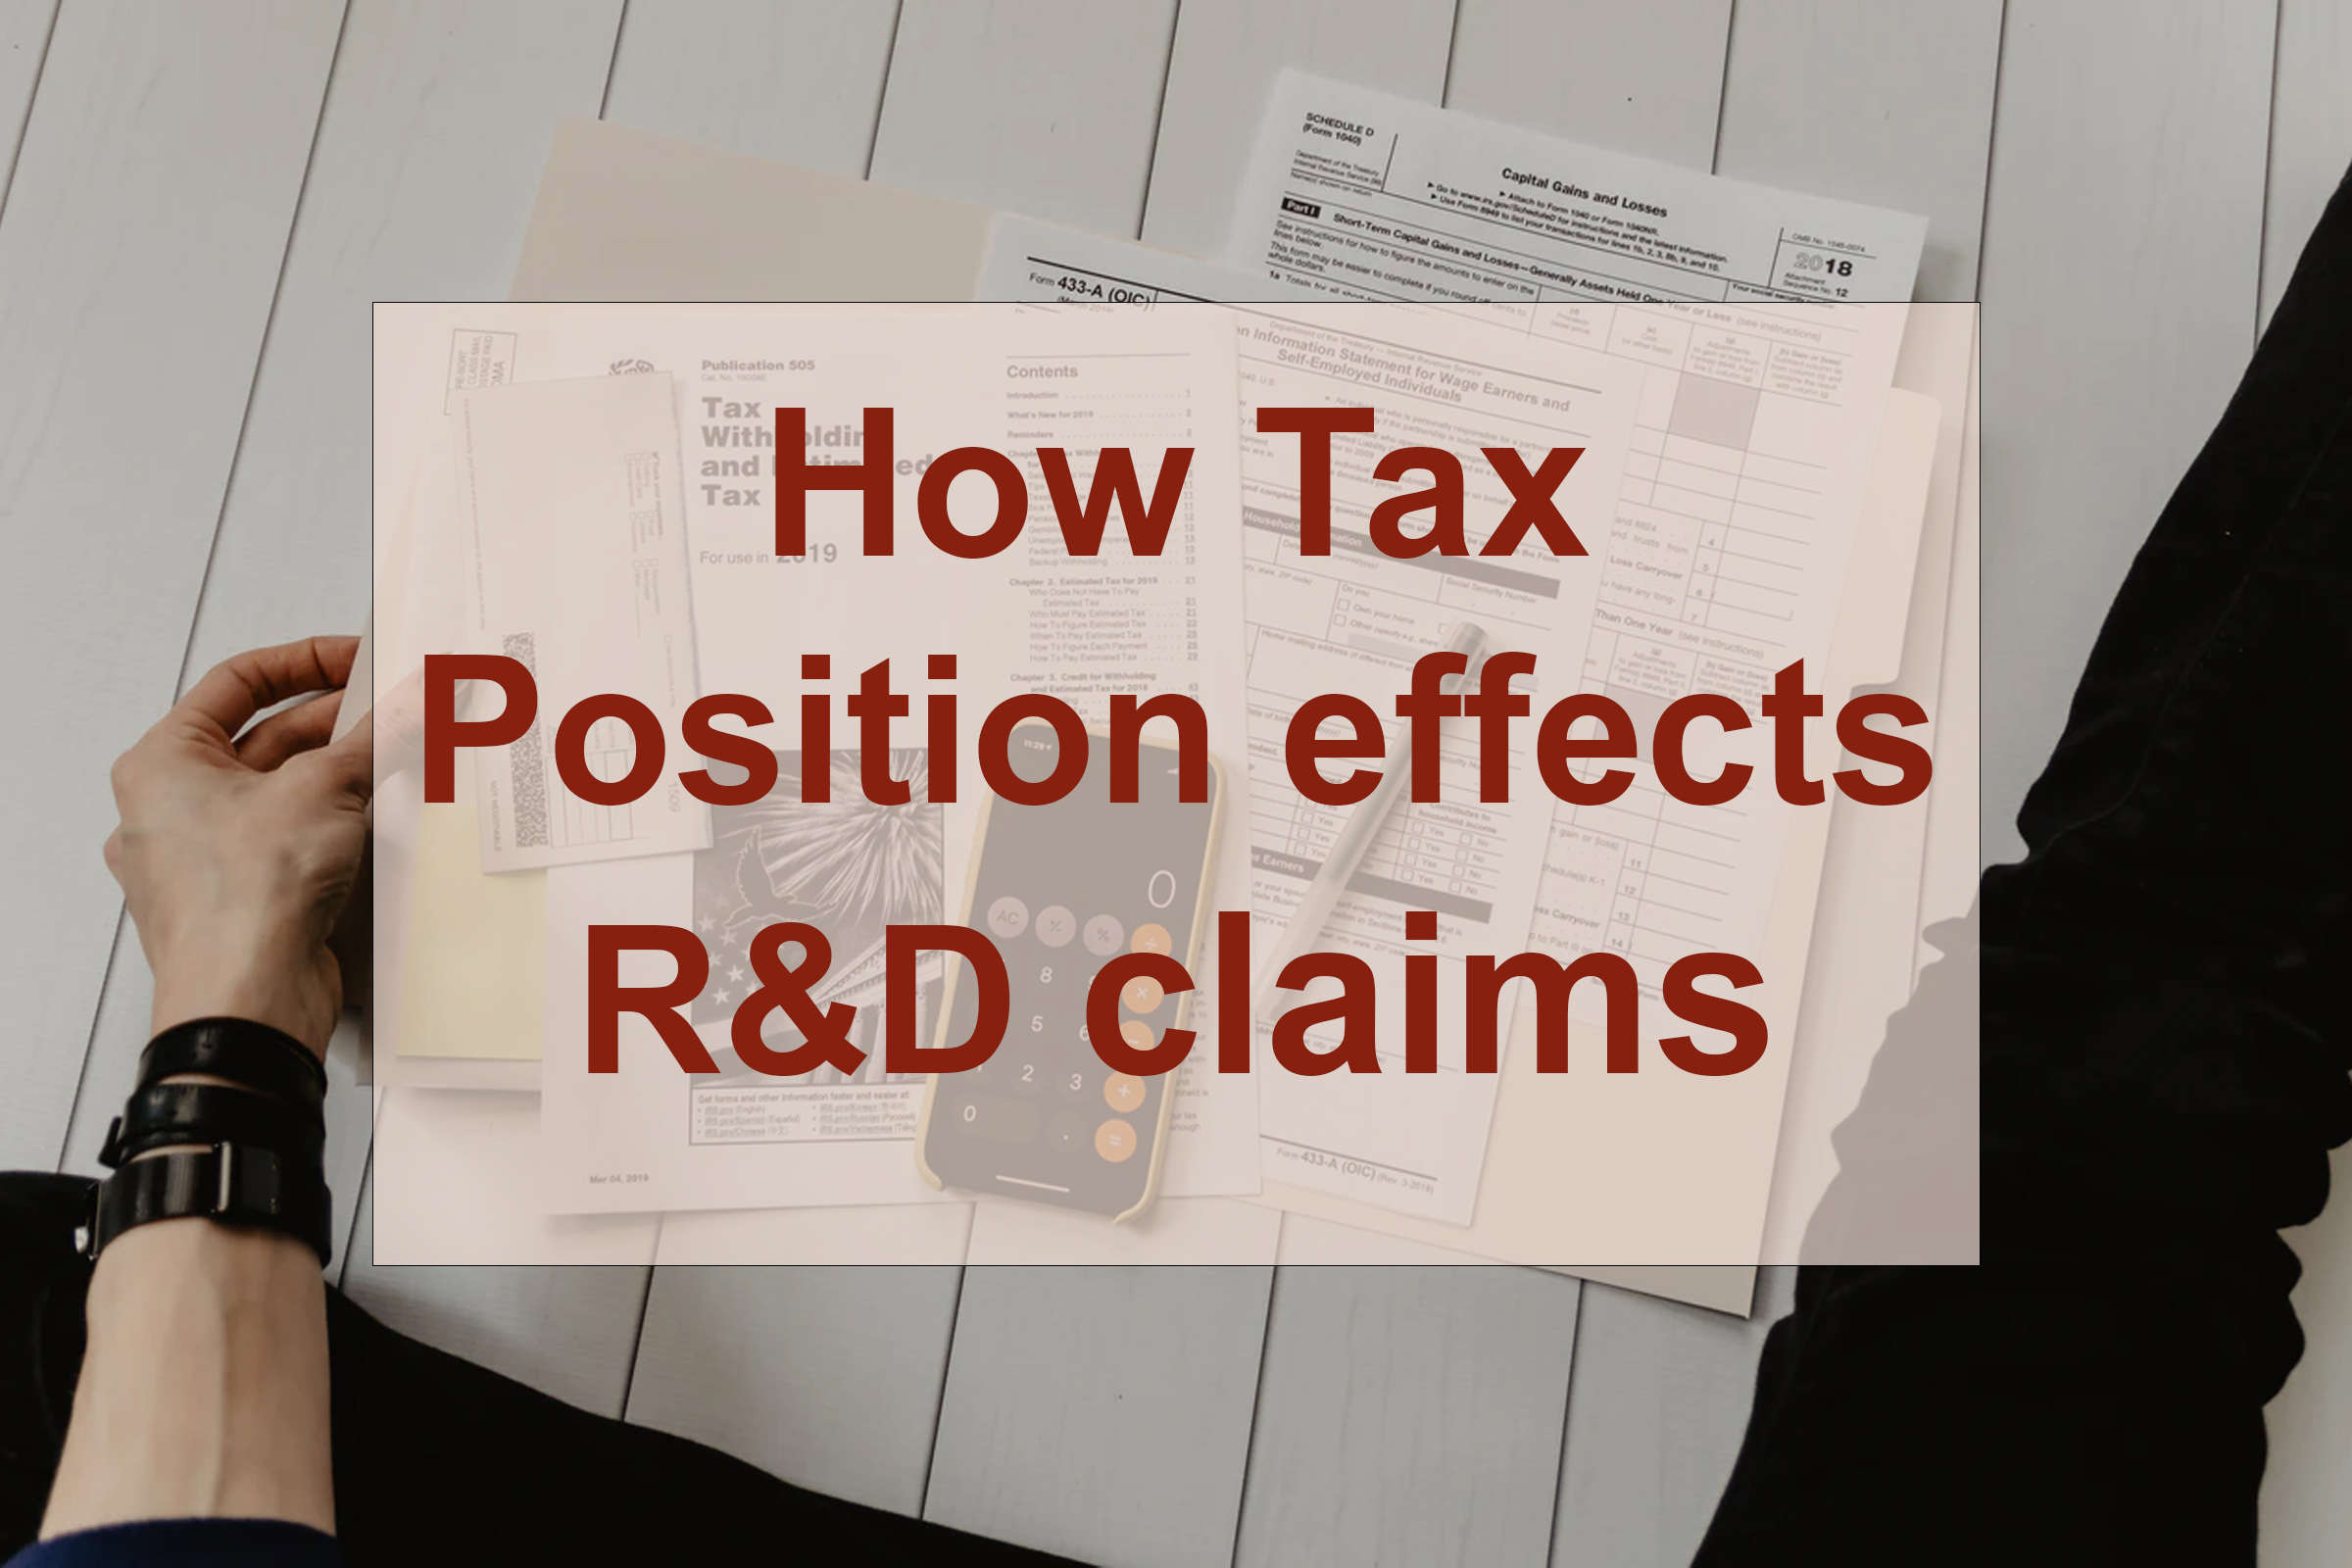 How tax position effects R&D claims